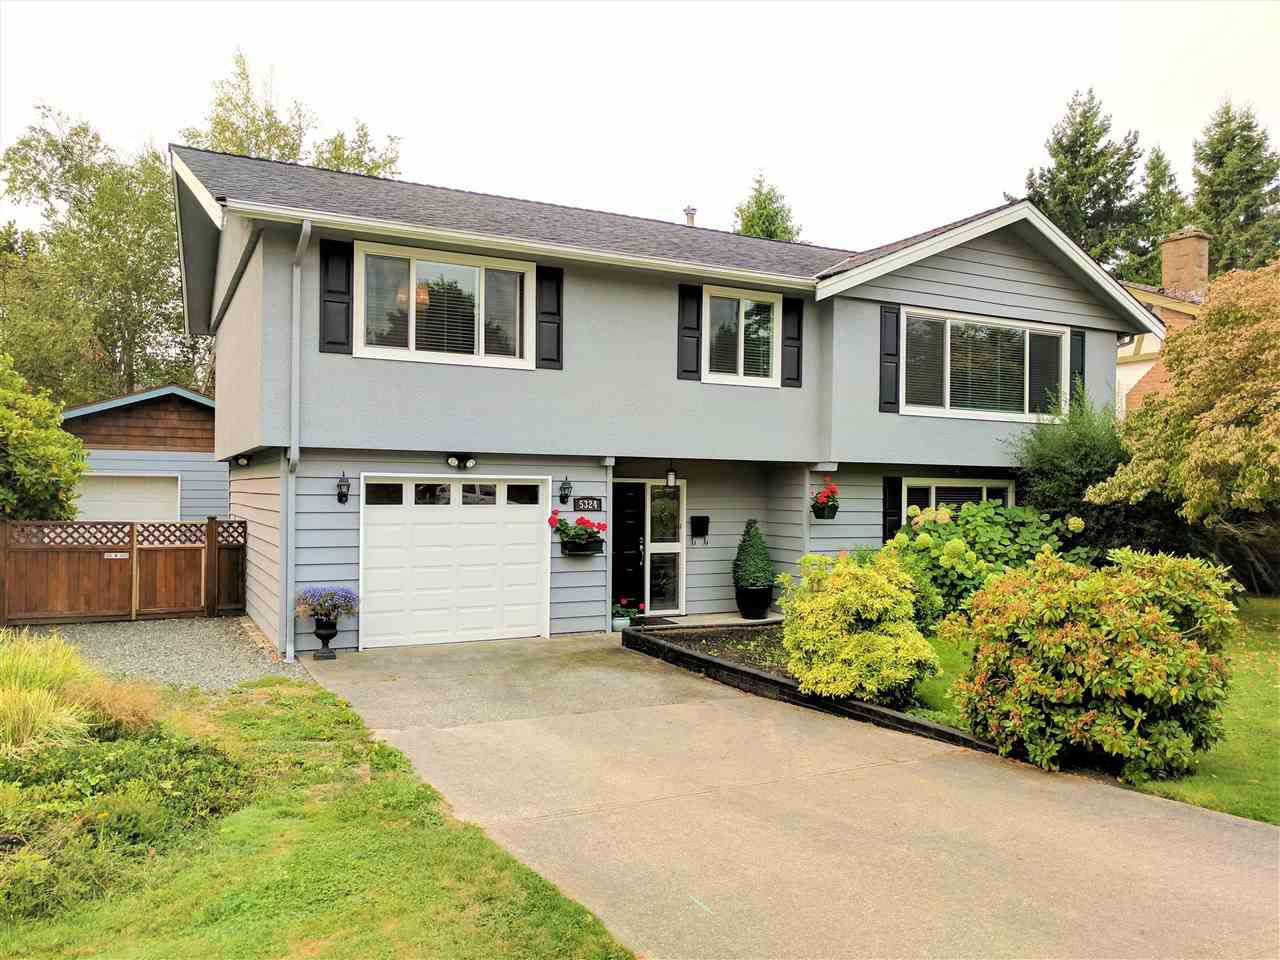 "Main Photo: 5324 1 Avenue in Delta: Pebble Hill House for sale in ""PEBBLE HILL"" (Tsawwassen)  : MLS®# R2202747"